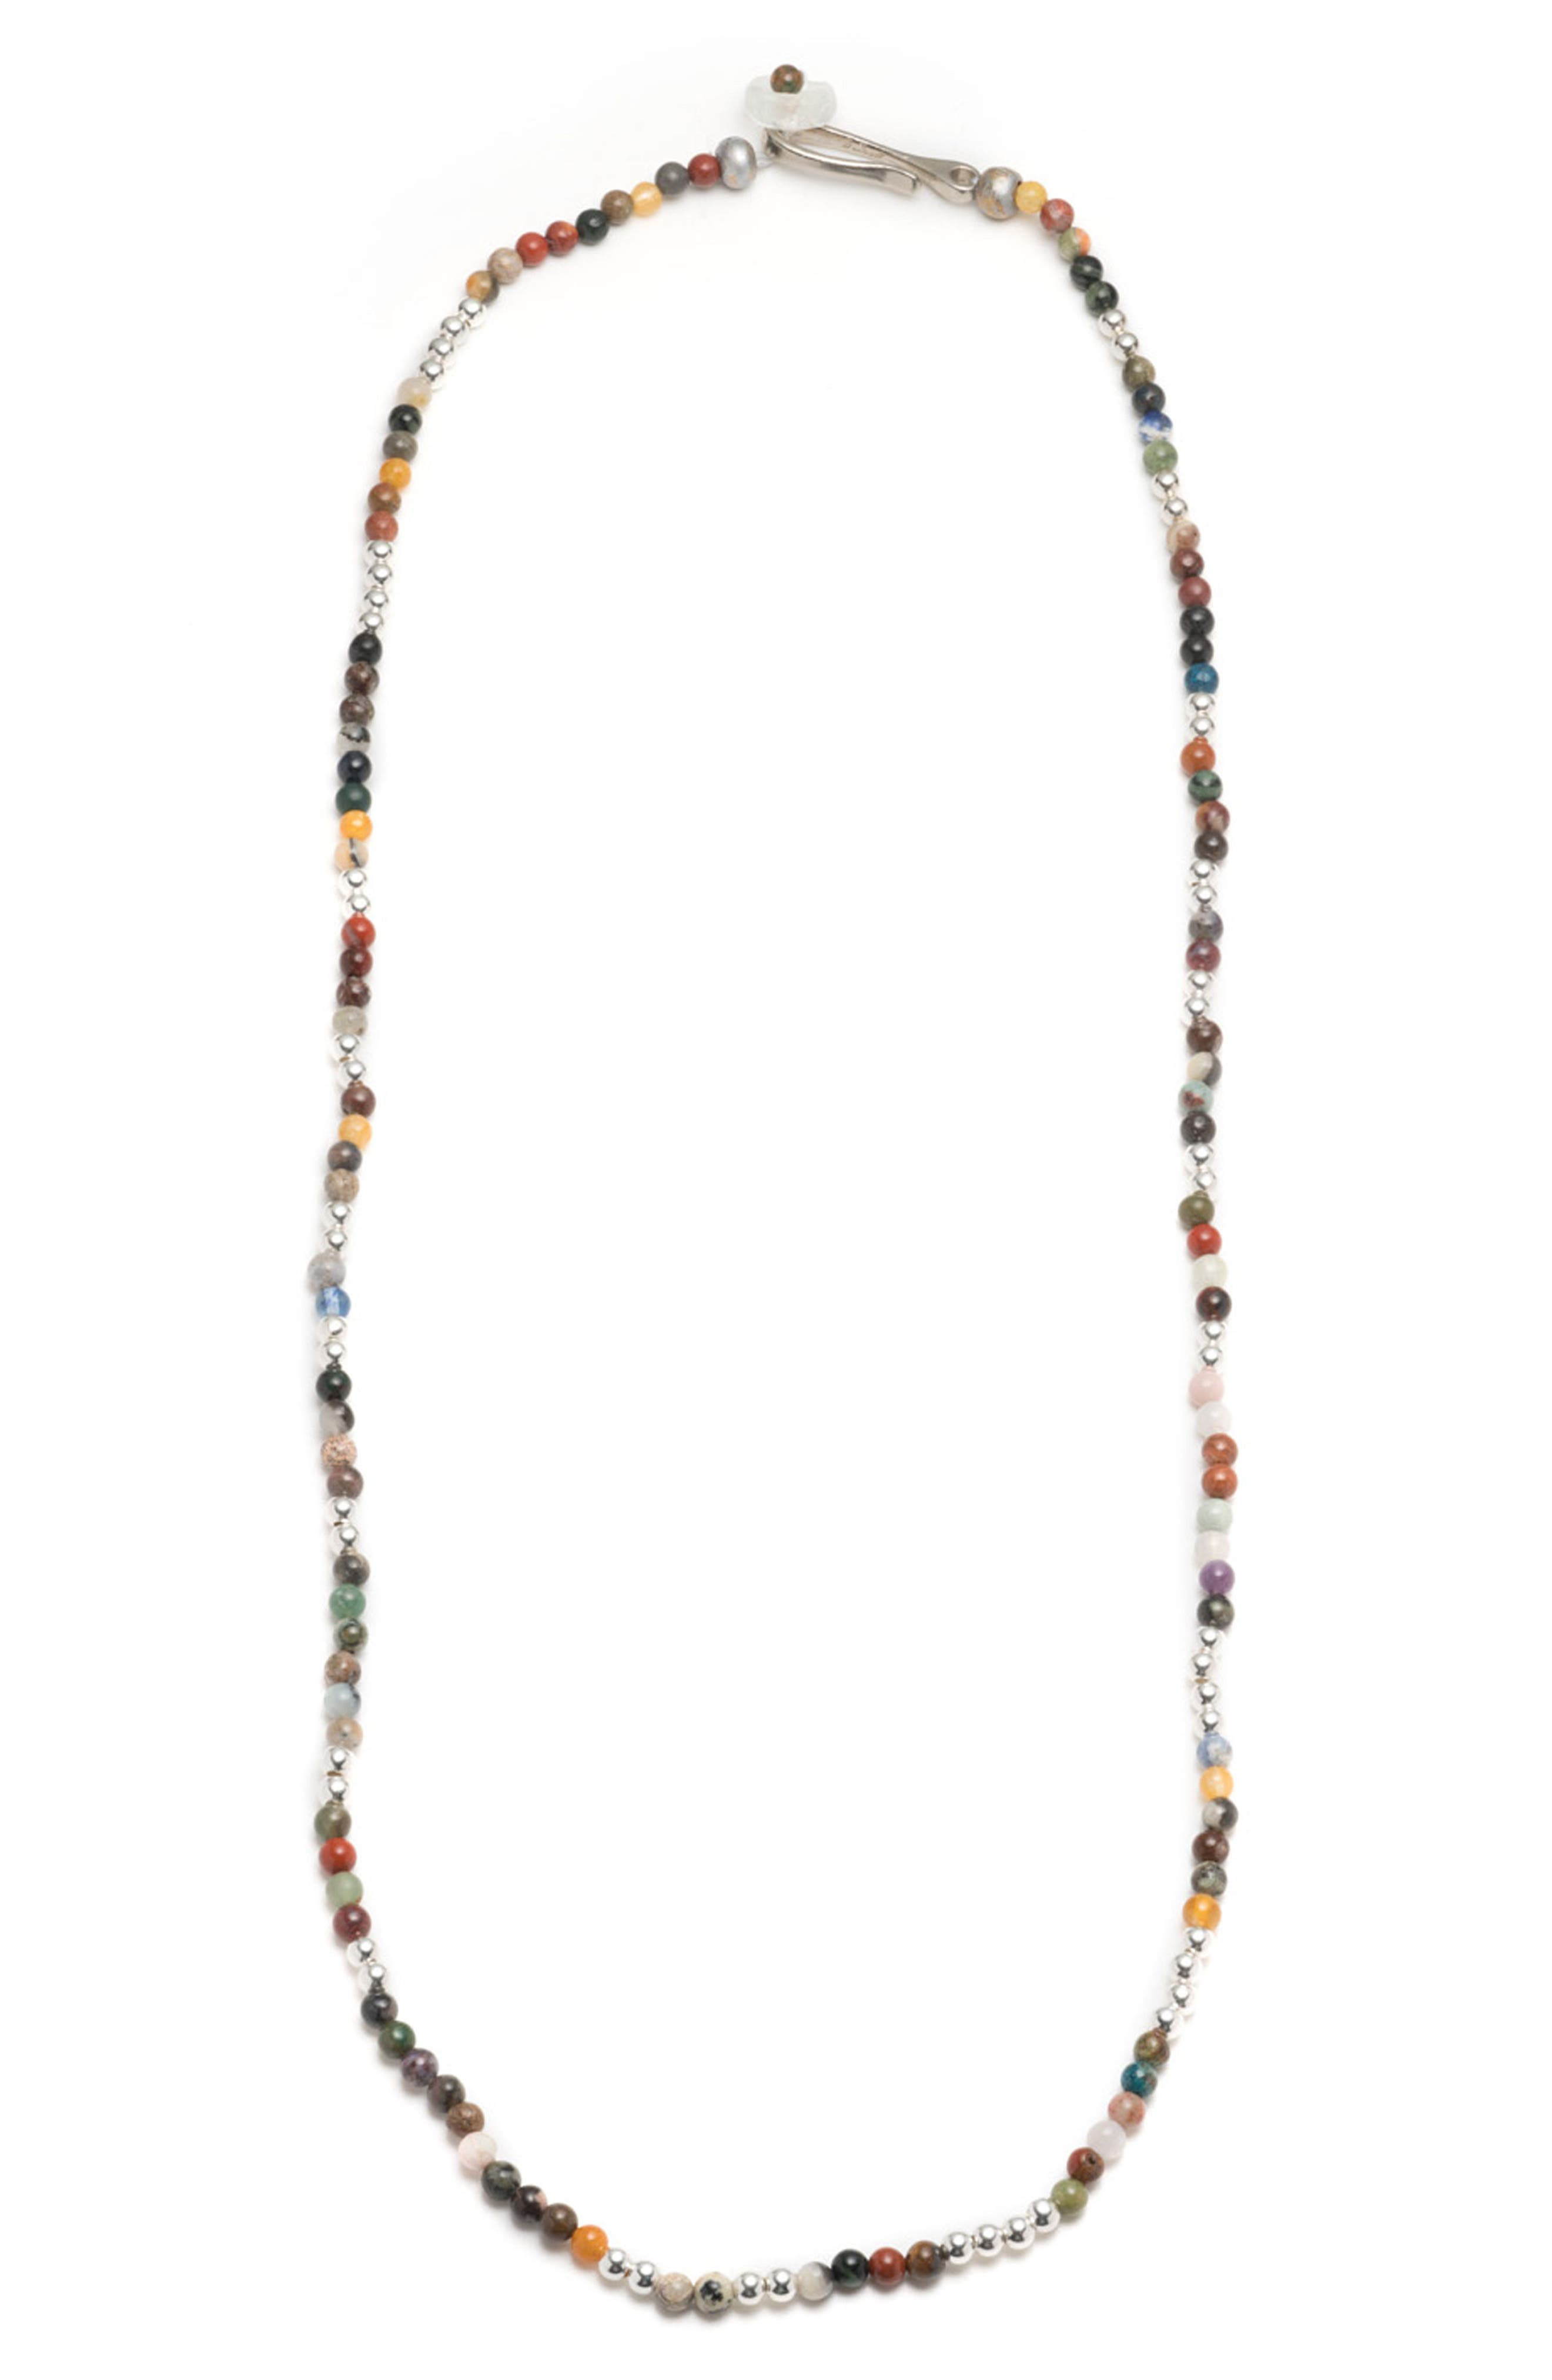 Essaouira Necklace,                             Main thumbnail 1, color,                             Silver/ Multi